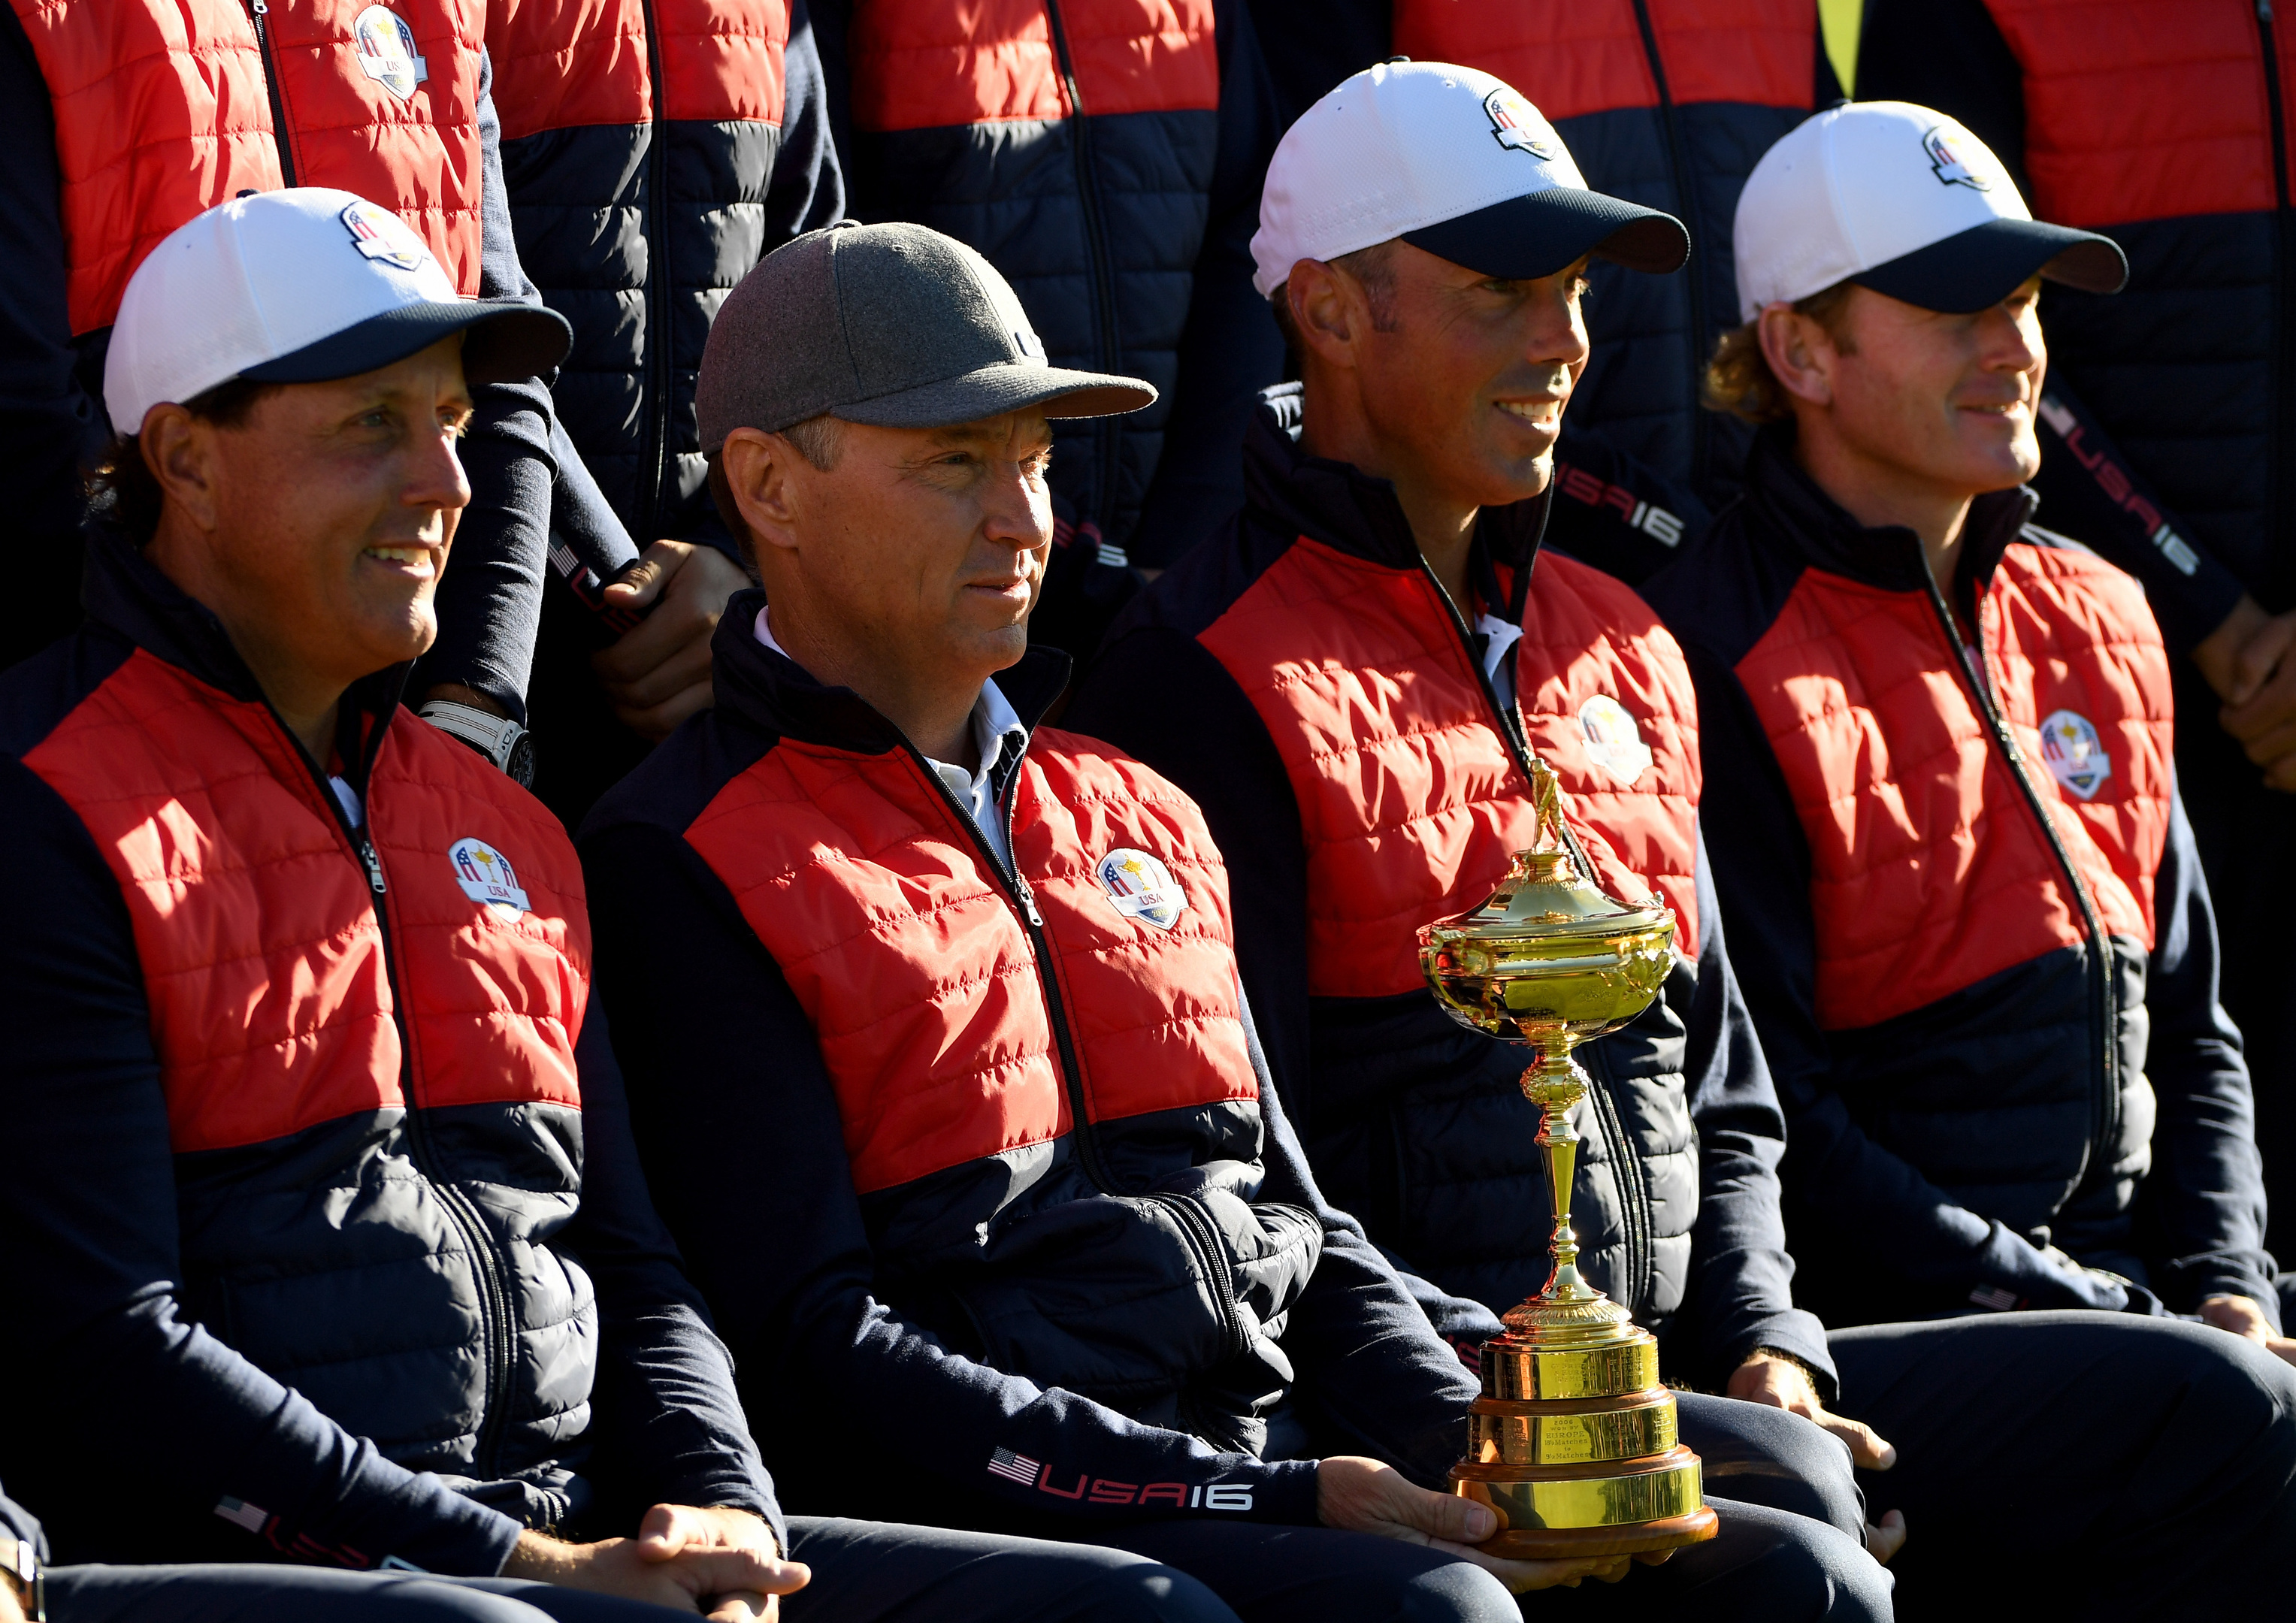 """Captain Davis Love III (2nd R) with """"team leader"""" Phil Mickelson, Matt Kuchar and Brandt Snedeker at the US team photocall yesterday."""